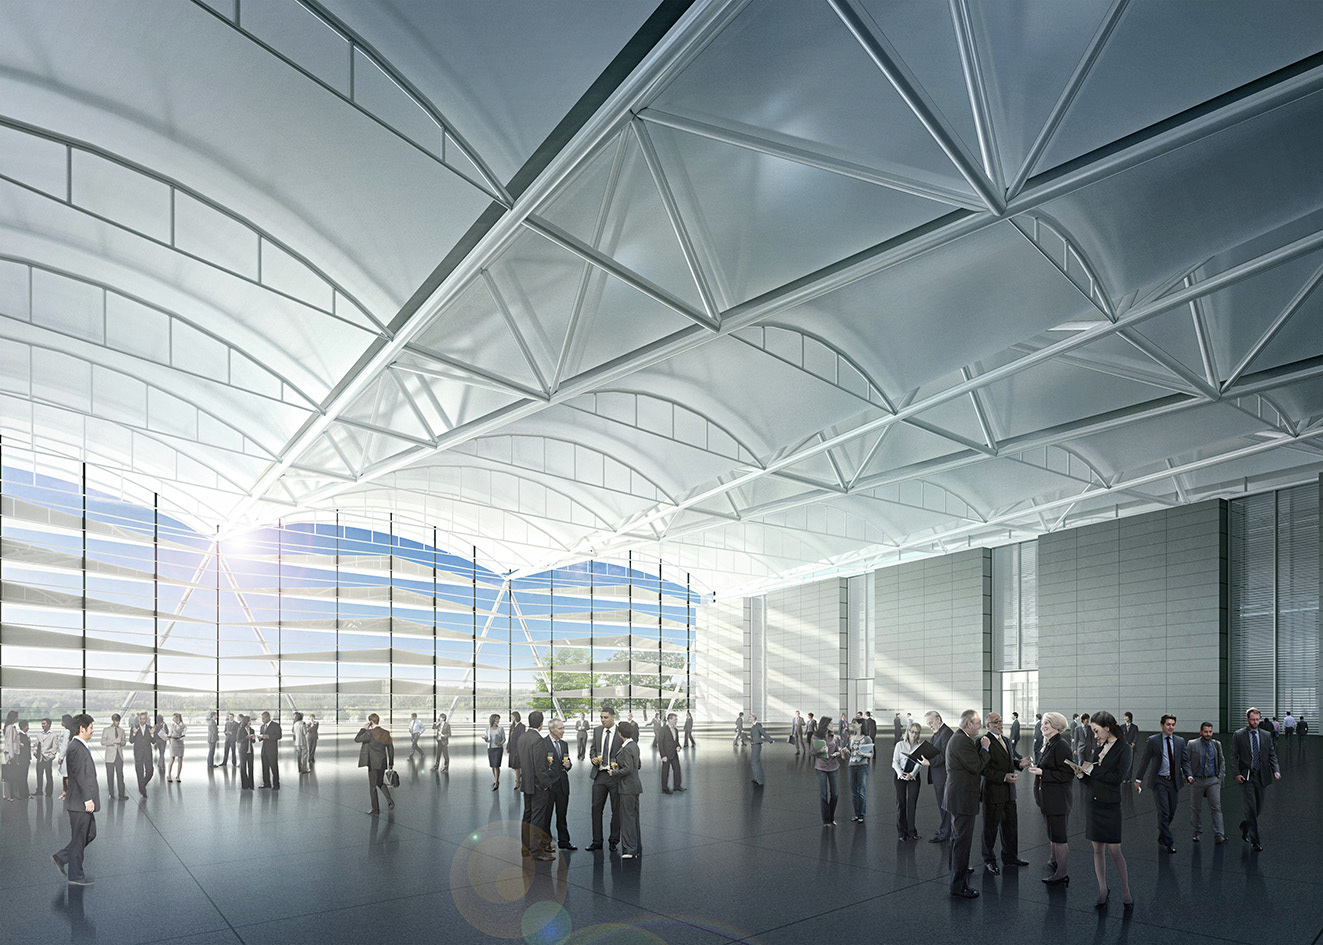 D Coform Exhibition : Gallery of gmp selected to design vietnam s national